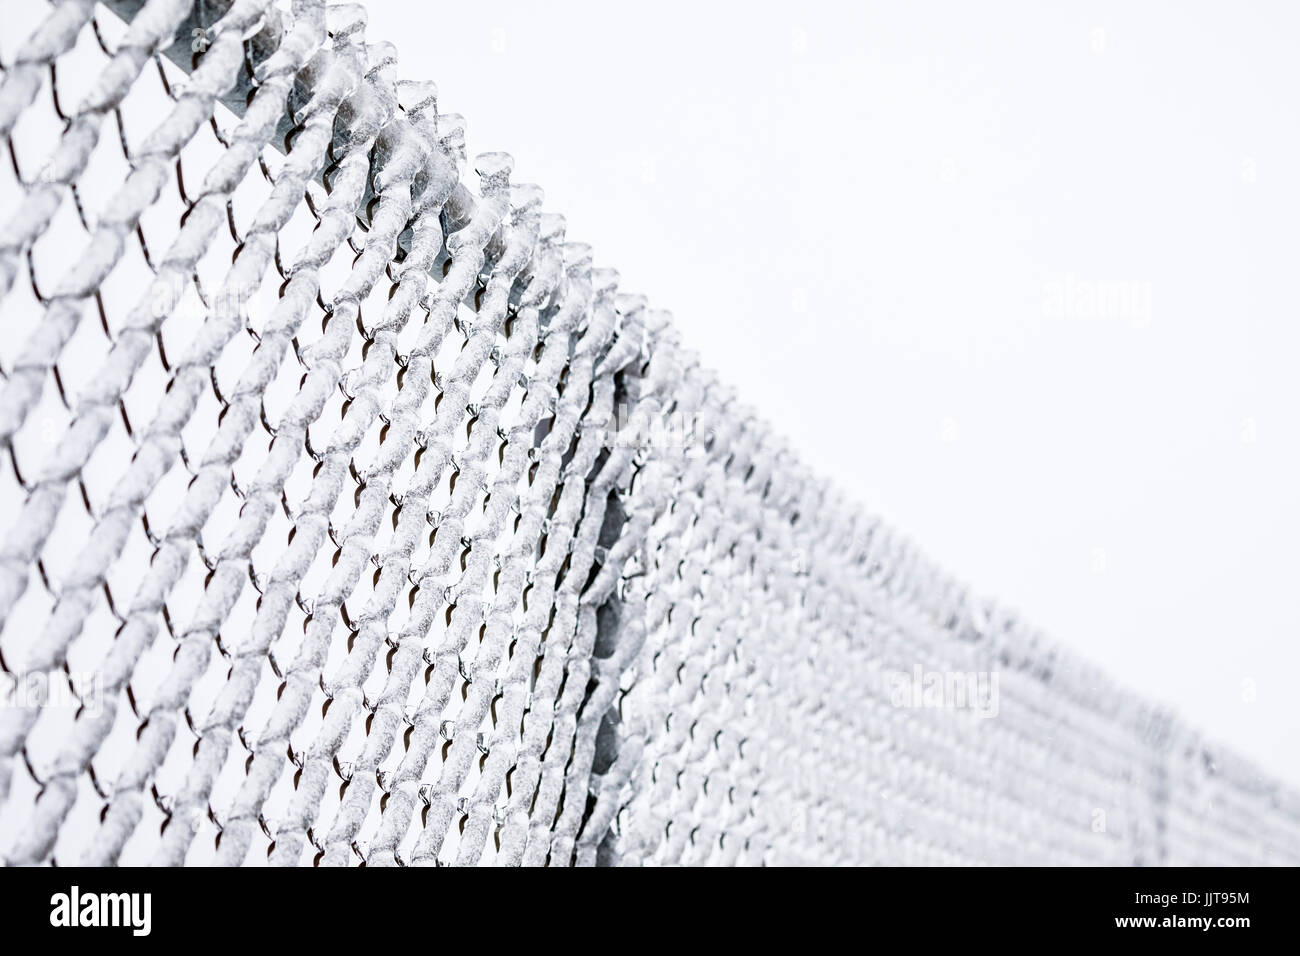 Ice covered chain link fence. - Stock Image